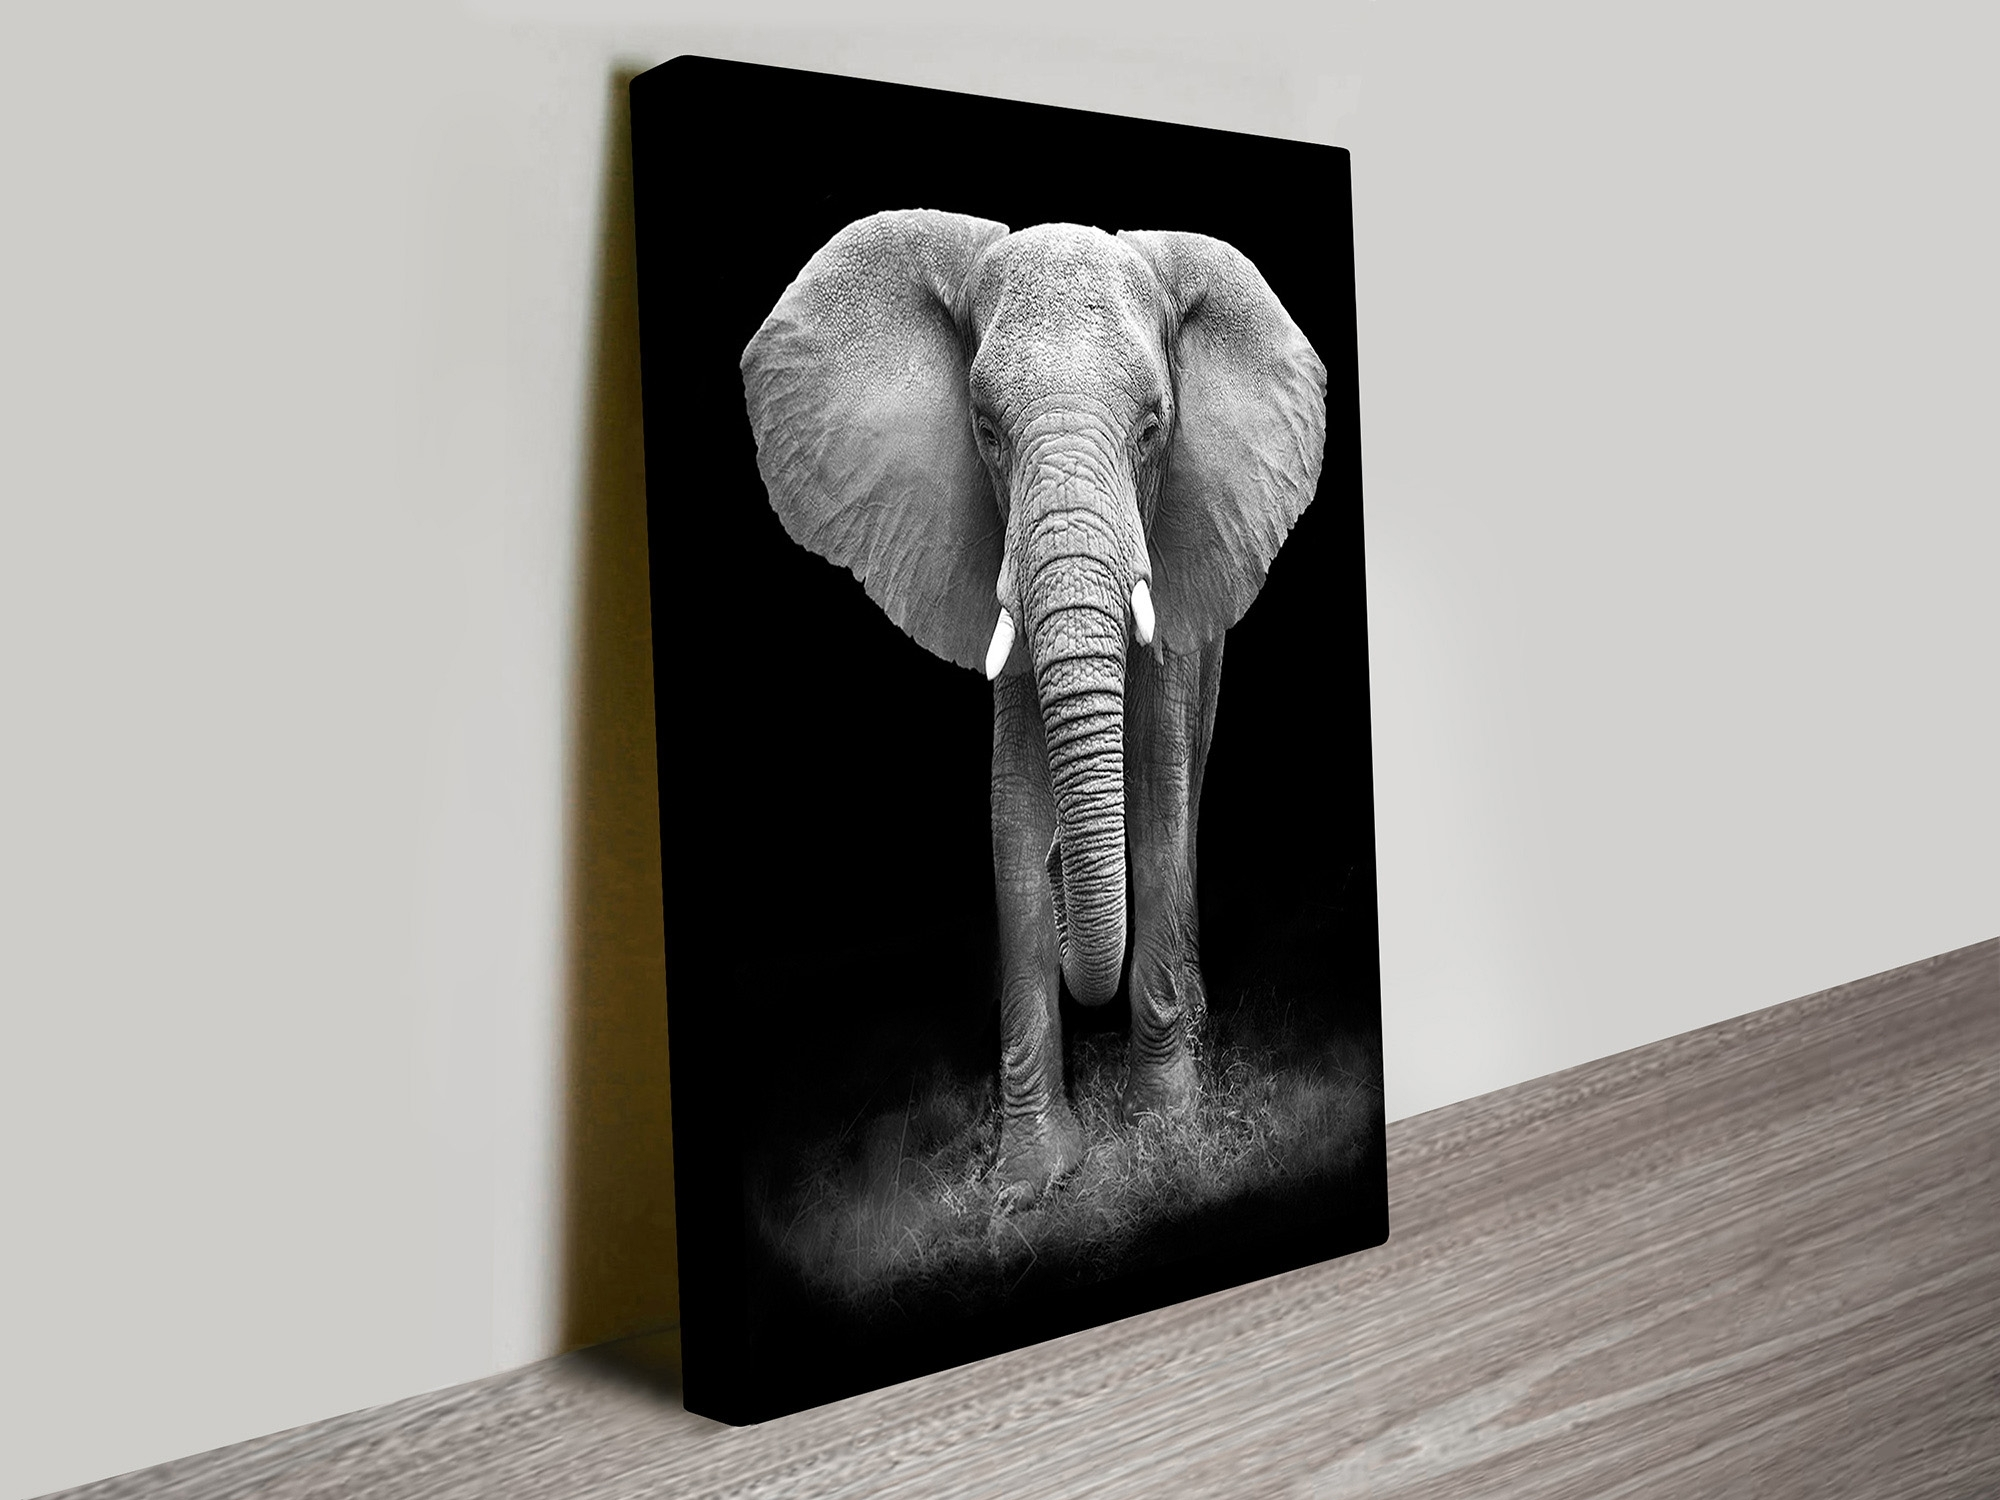 Gentle Giant Elephant Canvas Wall Art – Blue Horizon Prints Inside Current Elephant Canvas Wall Art (Gallery 10 of 15)